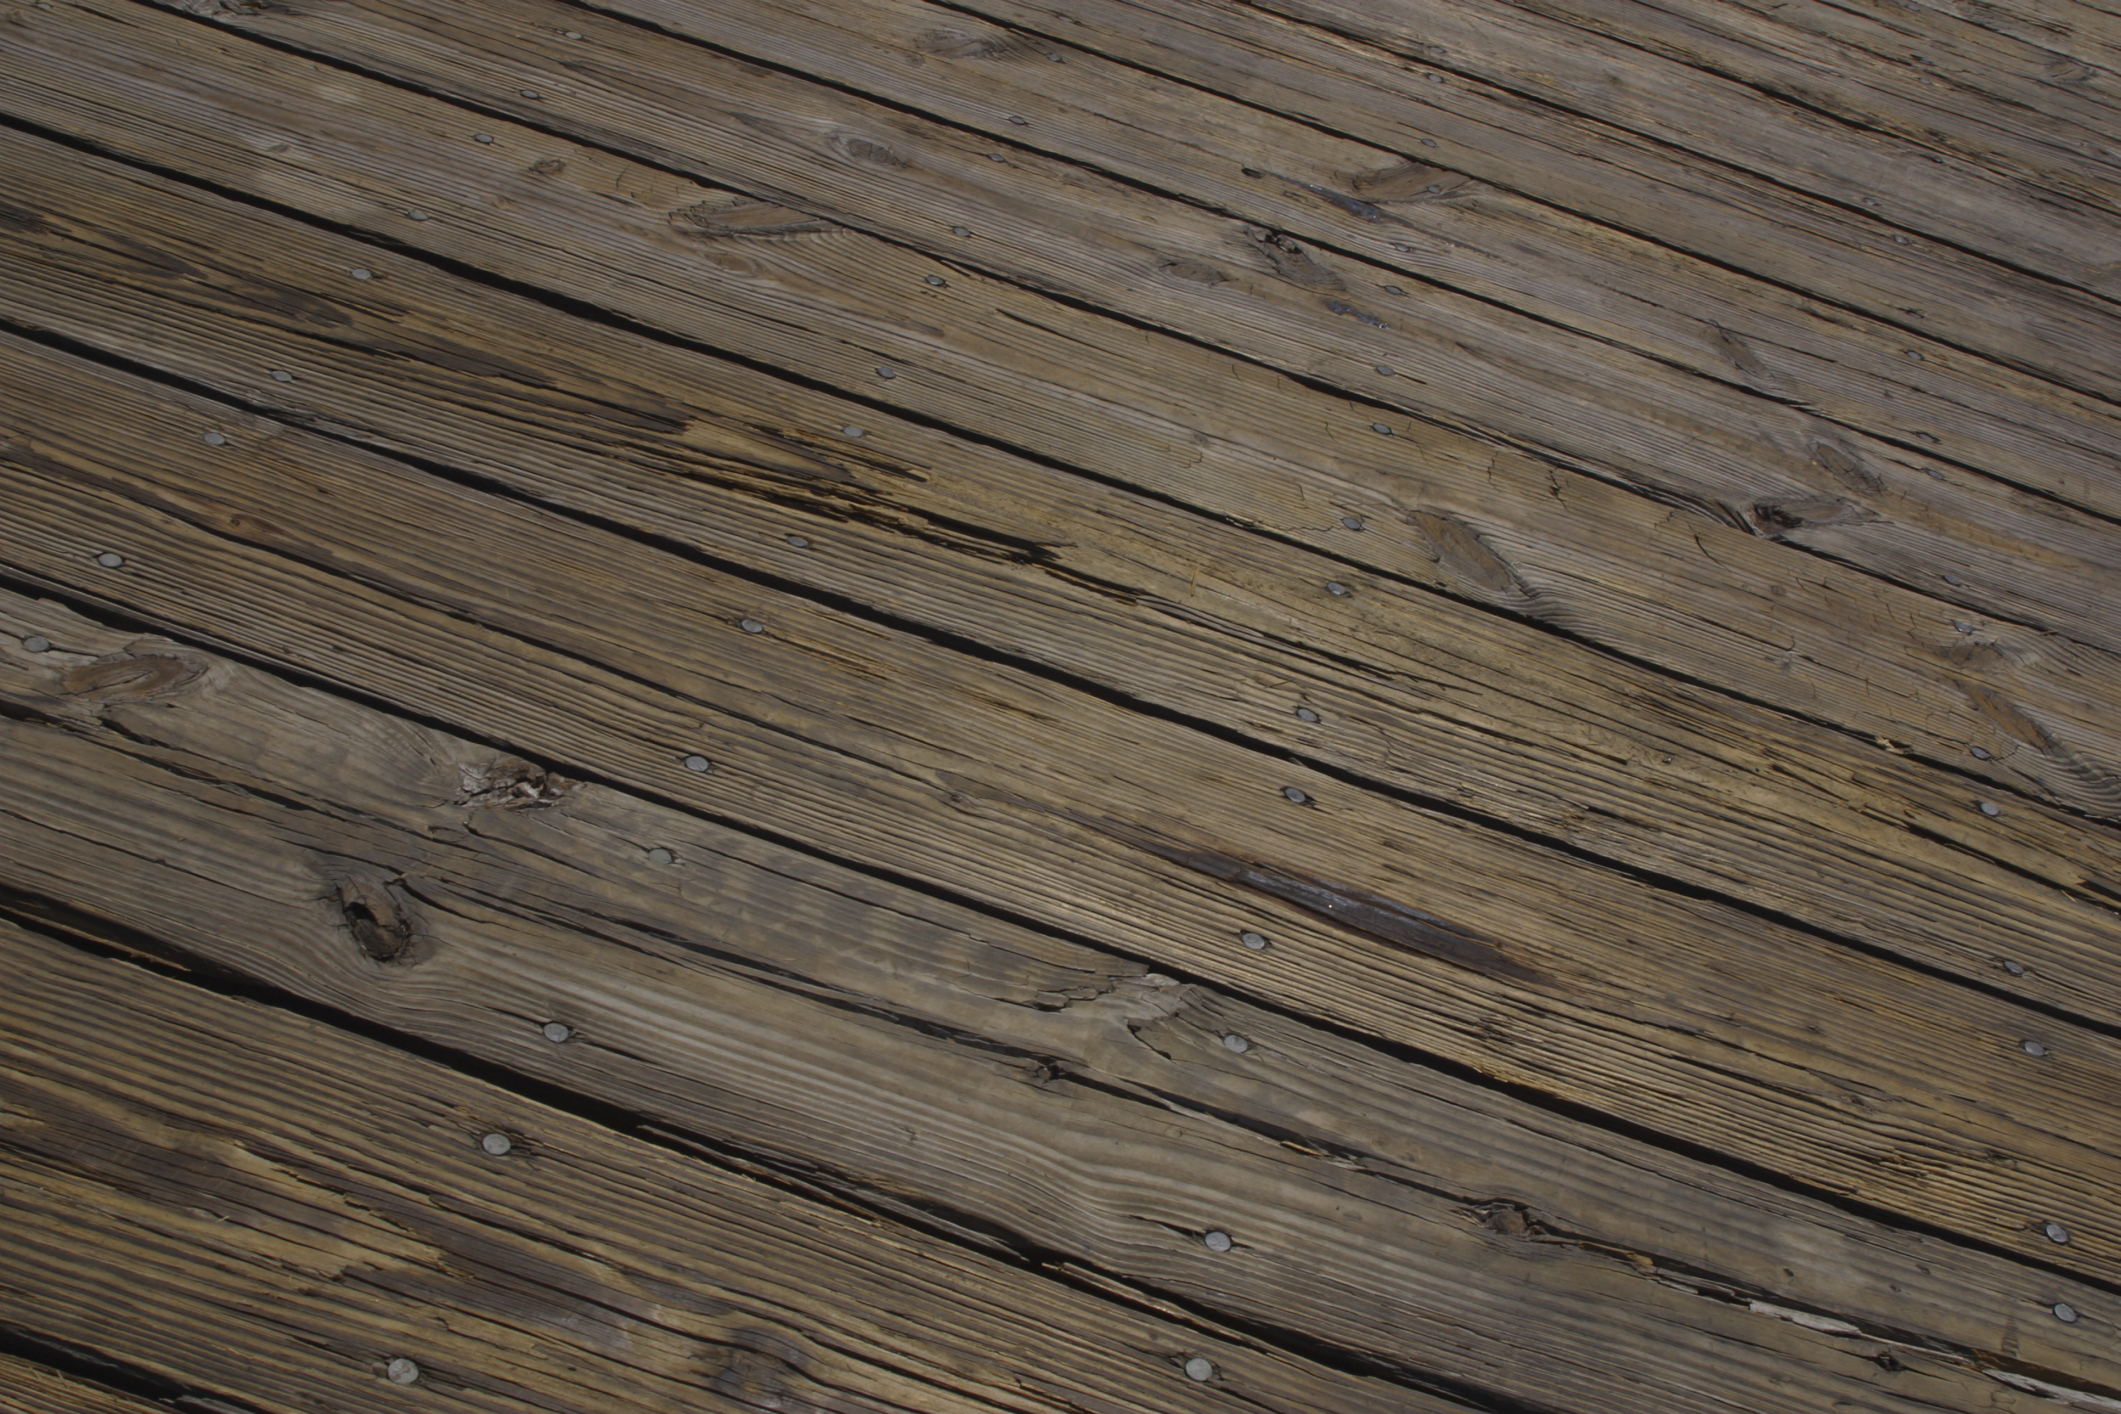 How to Resurface Cracked & Splintered Wood Decks | Home